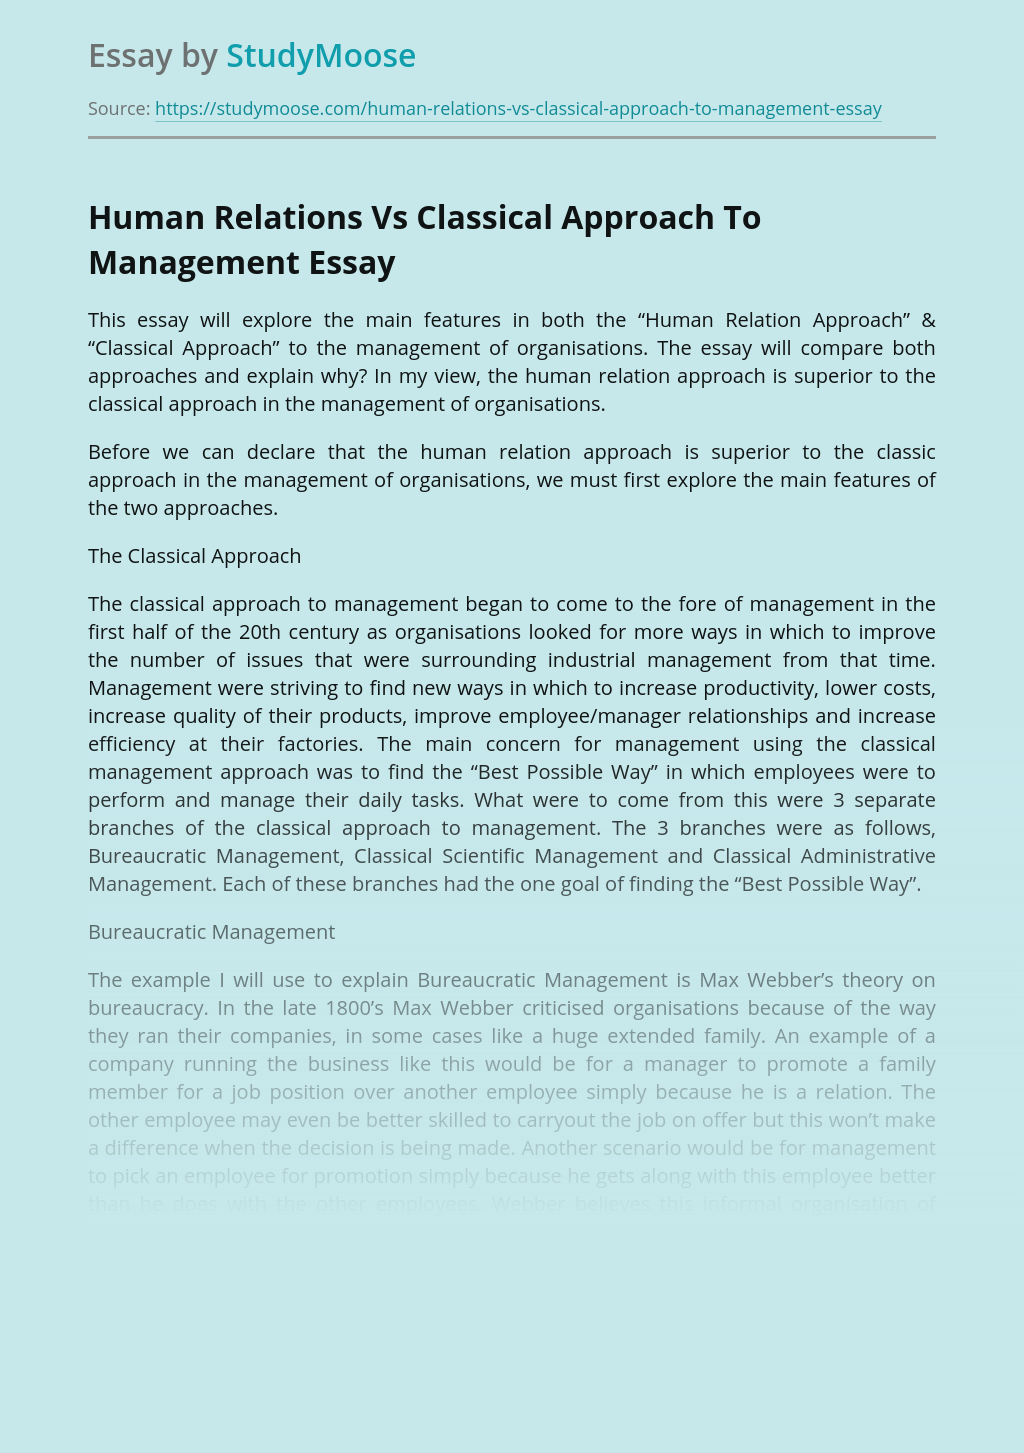 Human Relations Vs Classical Approach To Management